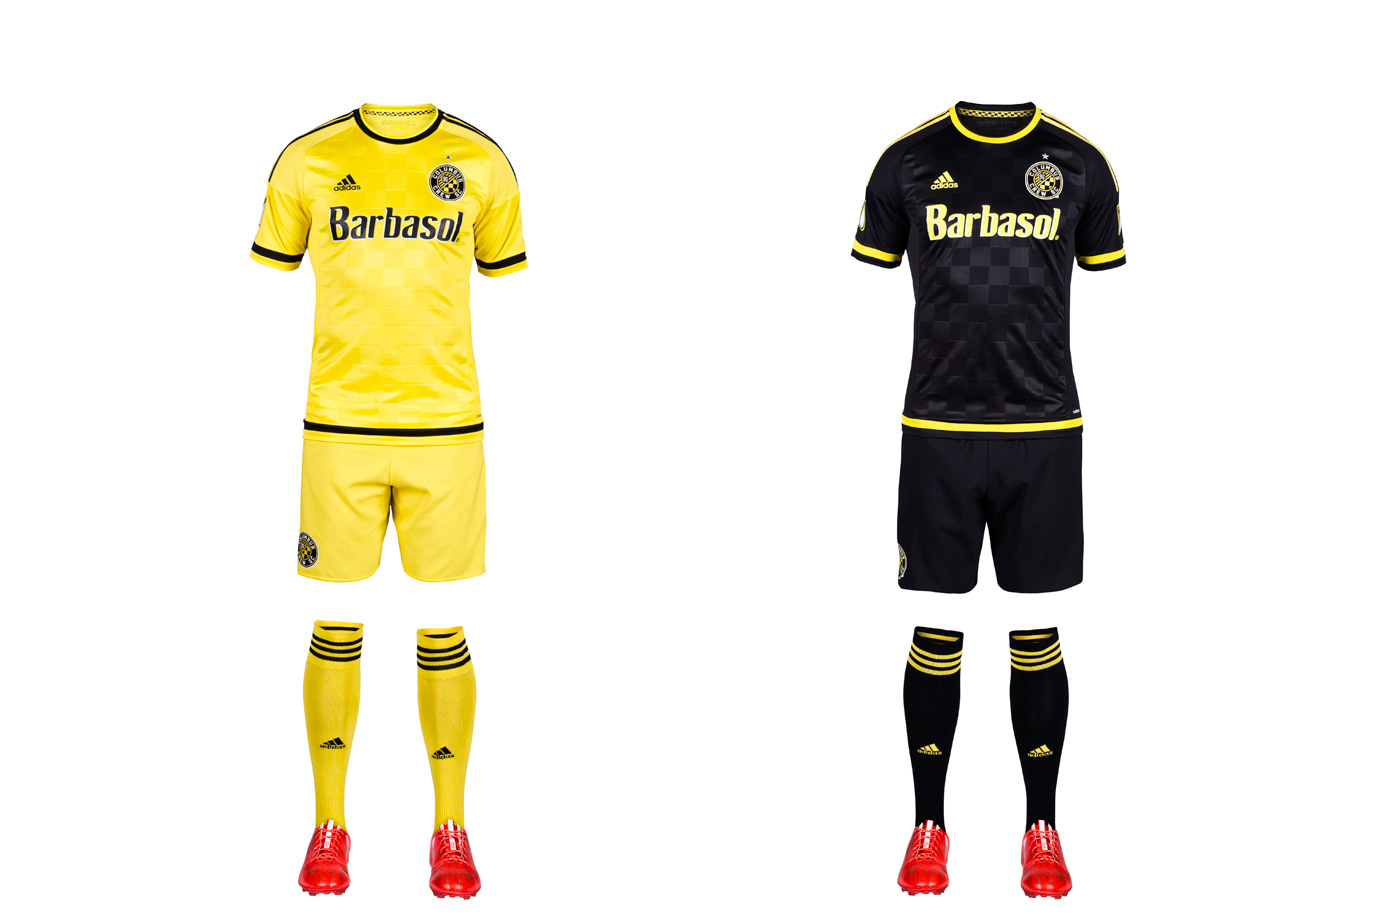 Columbus Crew uniform